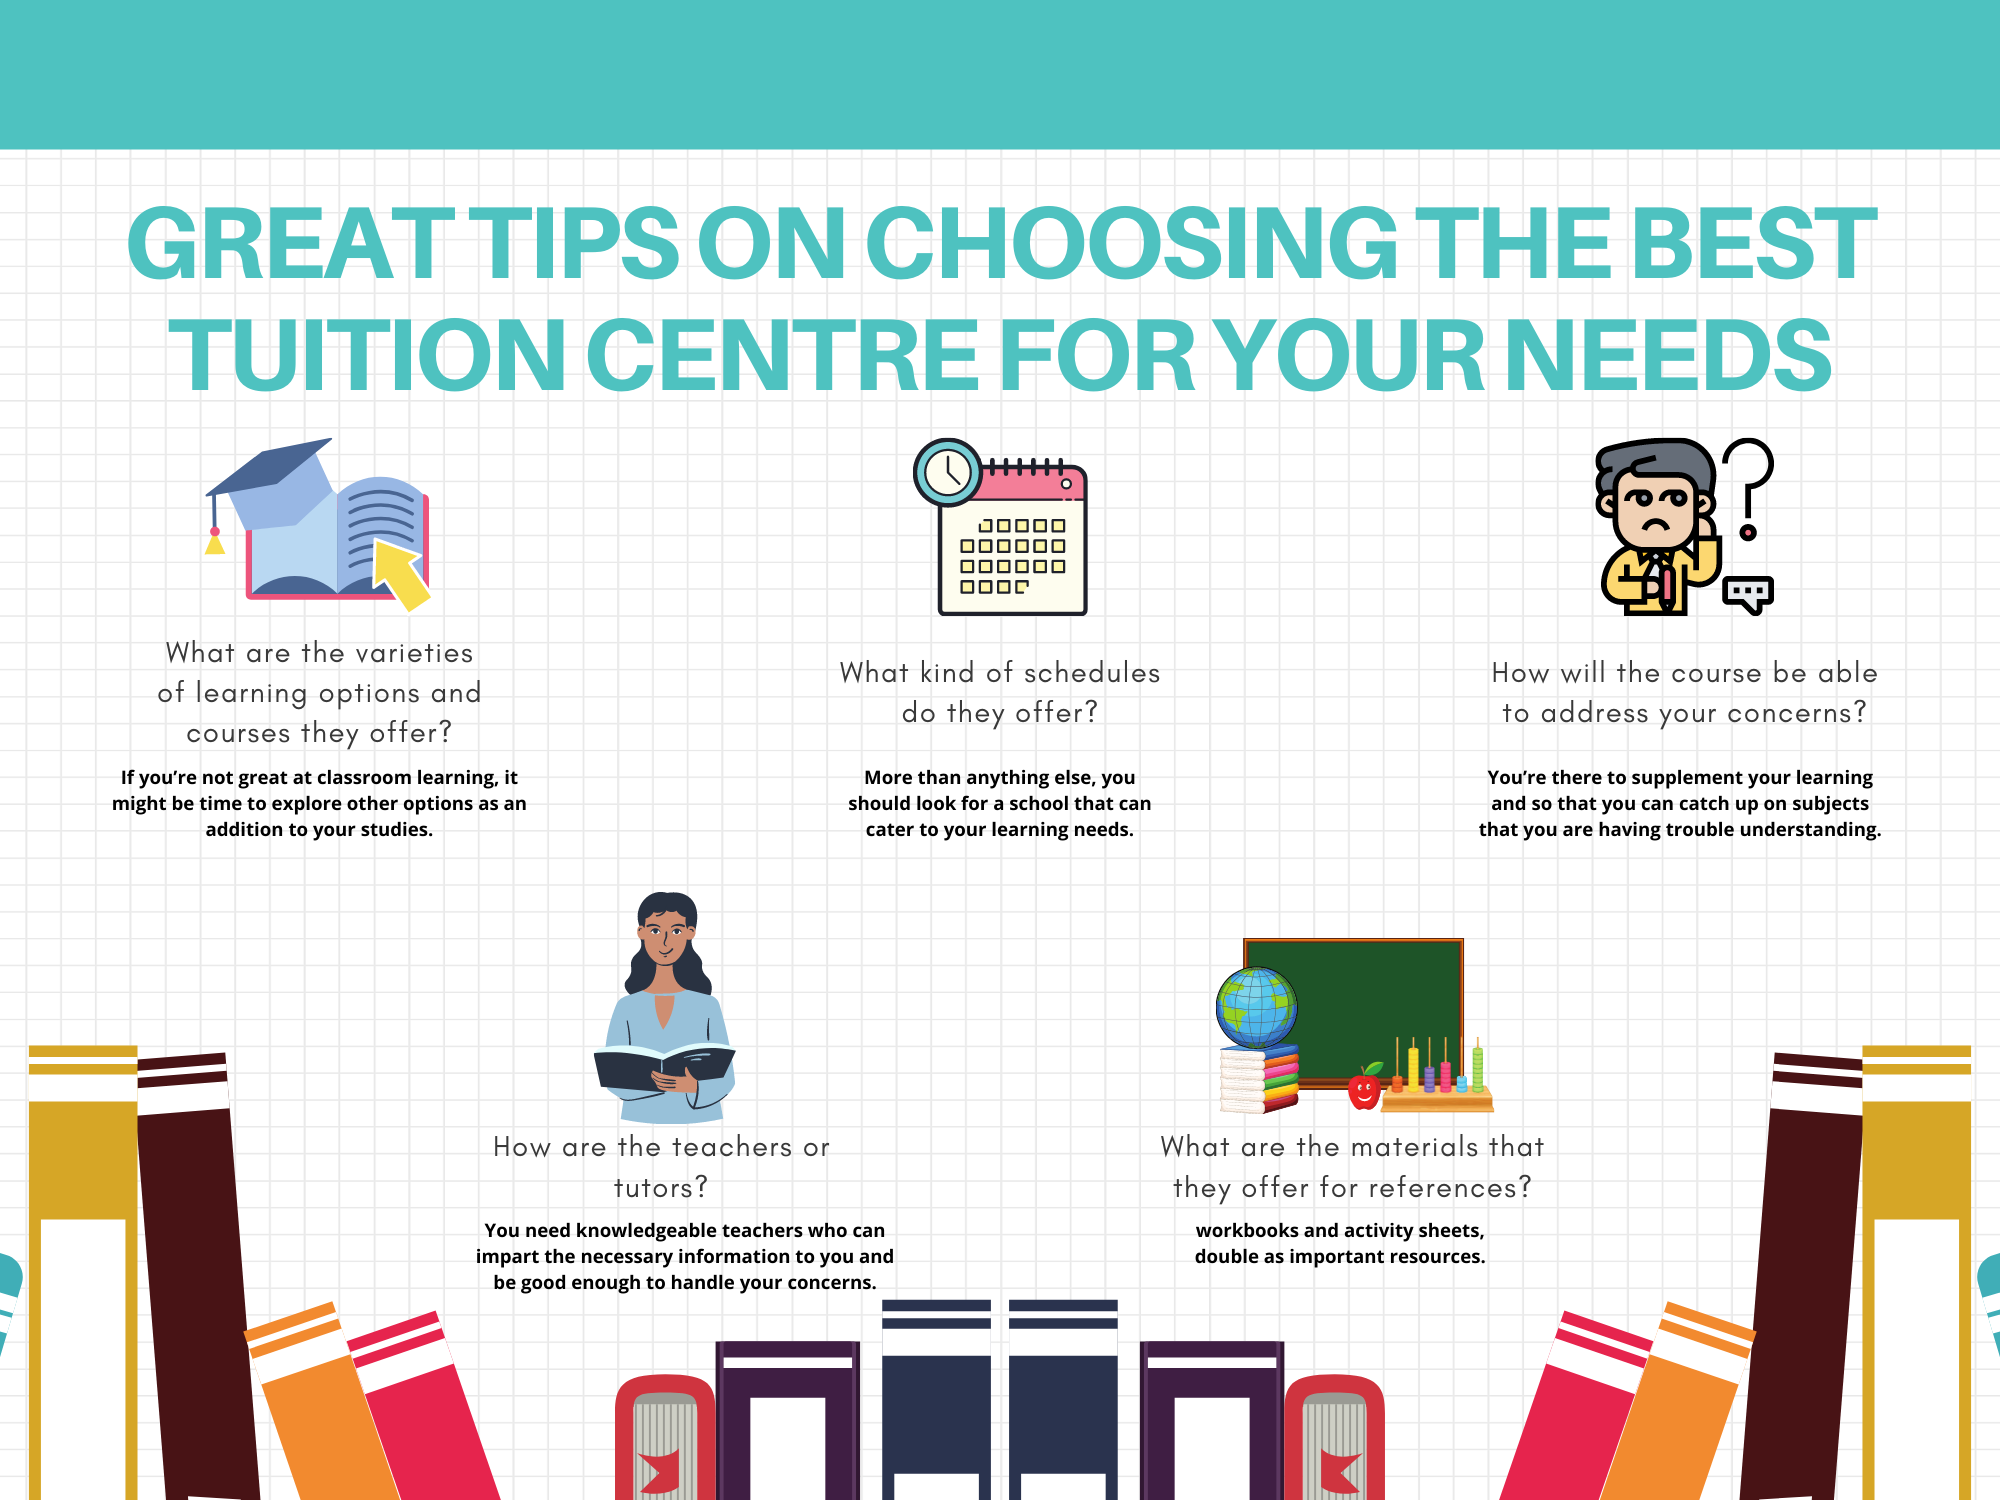 Great-tips-on-choosing-the-best-tuition-centre-for-your-needs